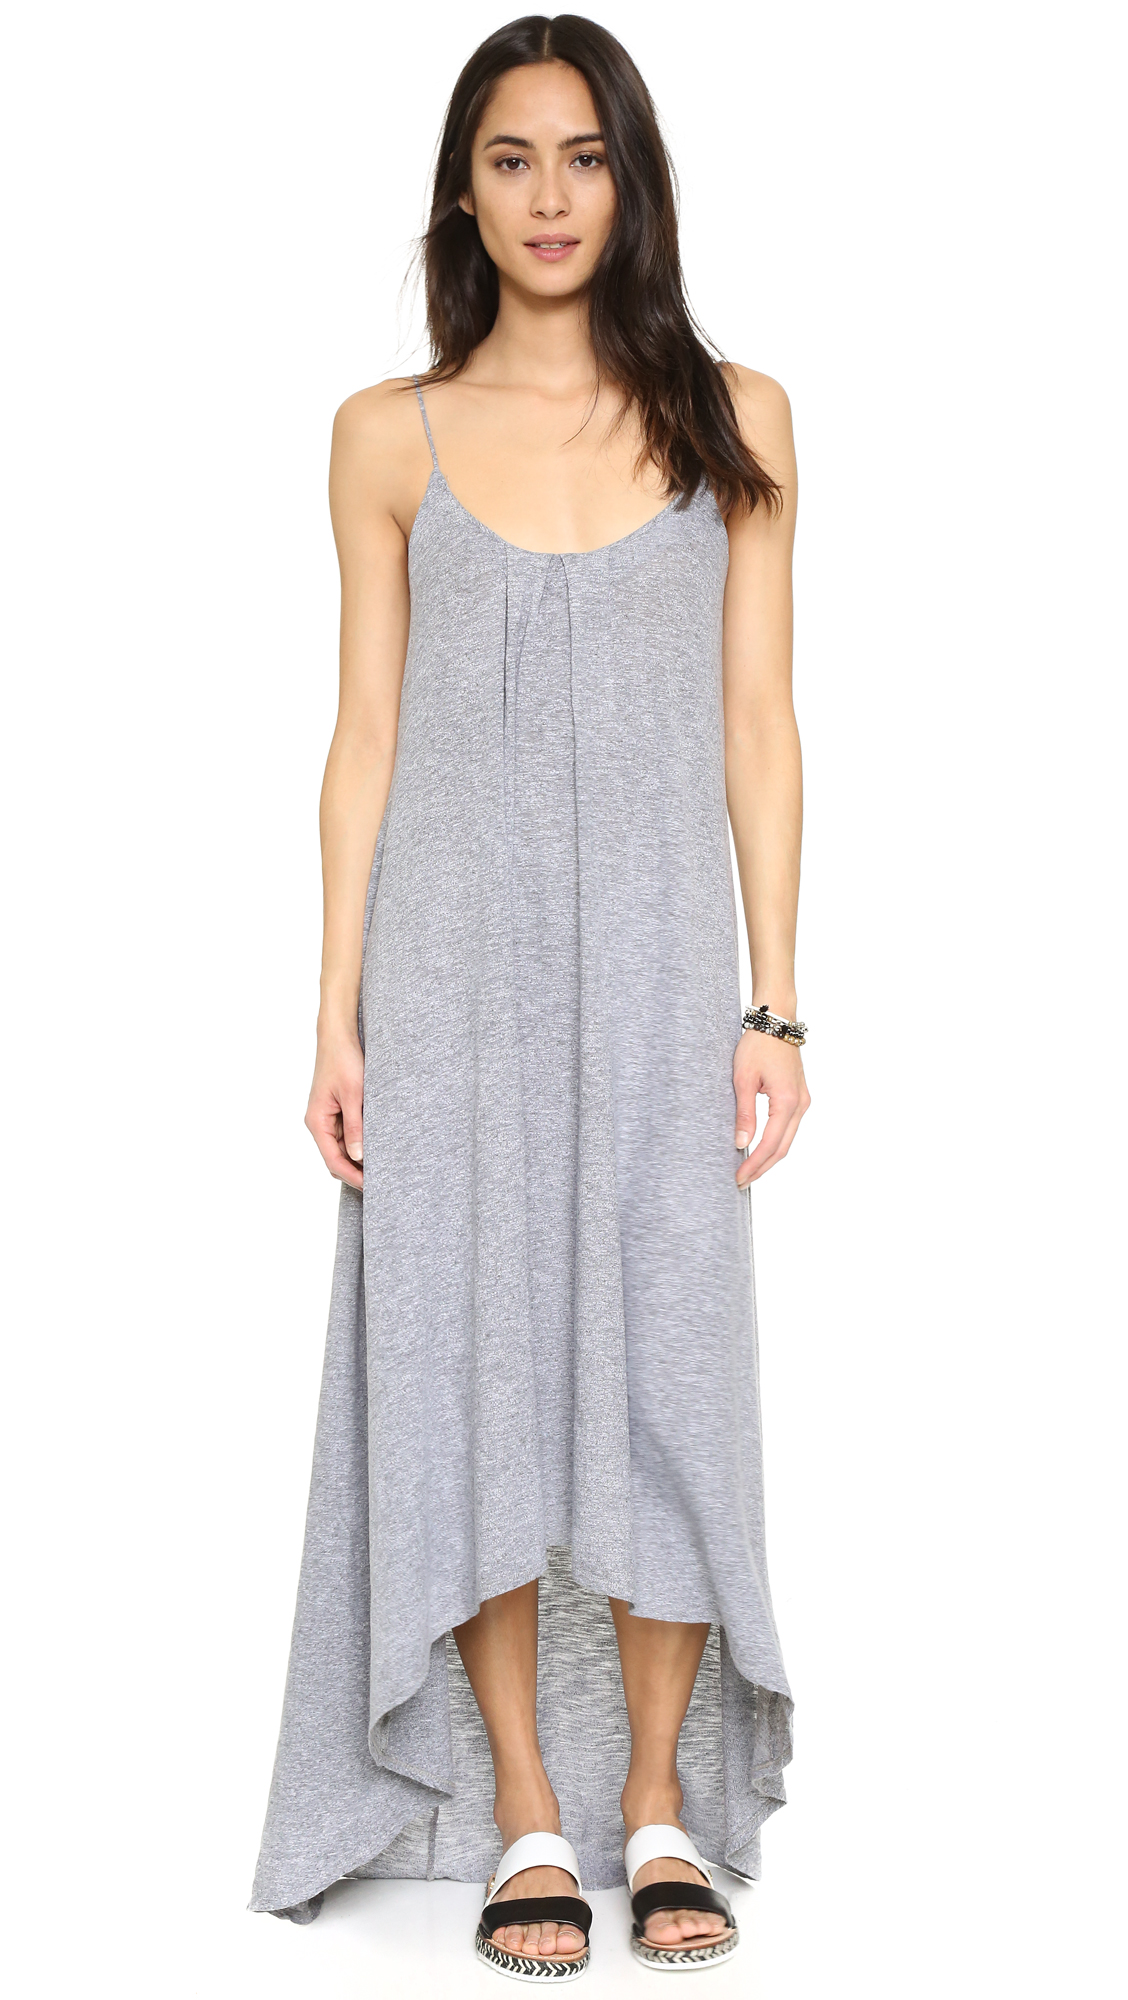 Lanston High Low Maxi Dress - Heather at Shopbop